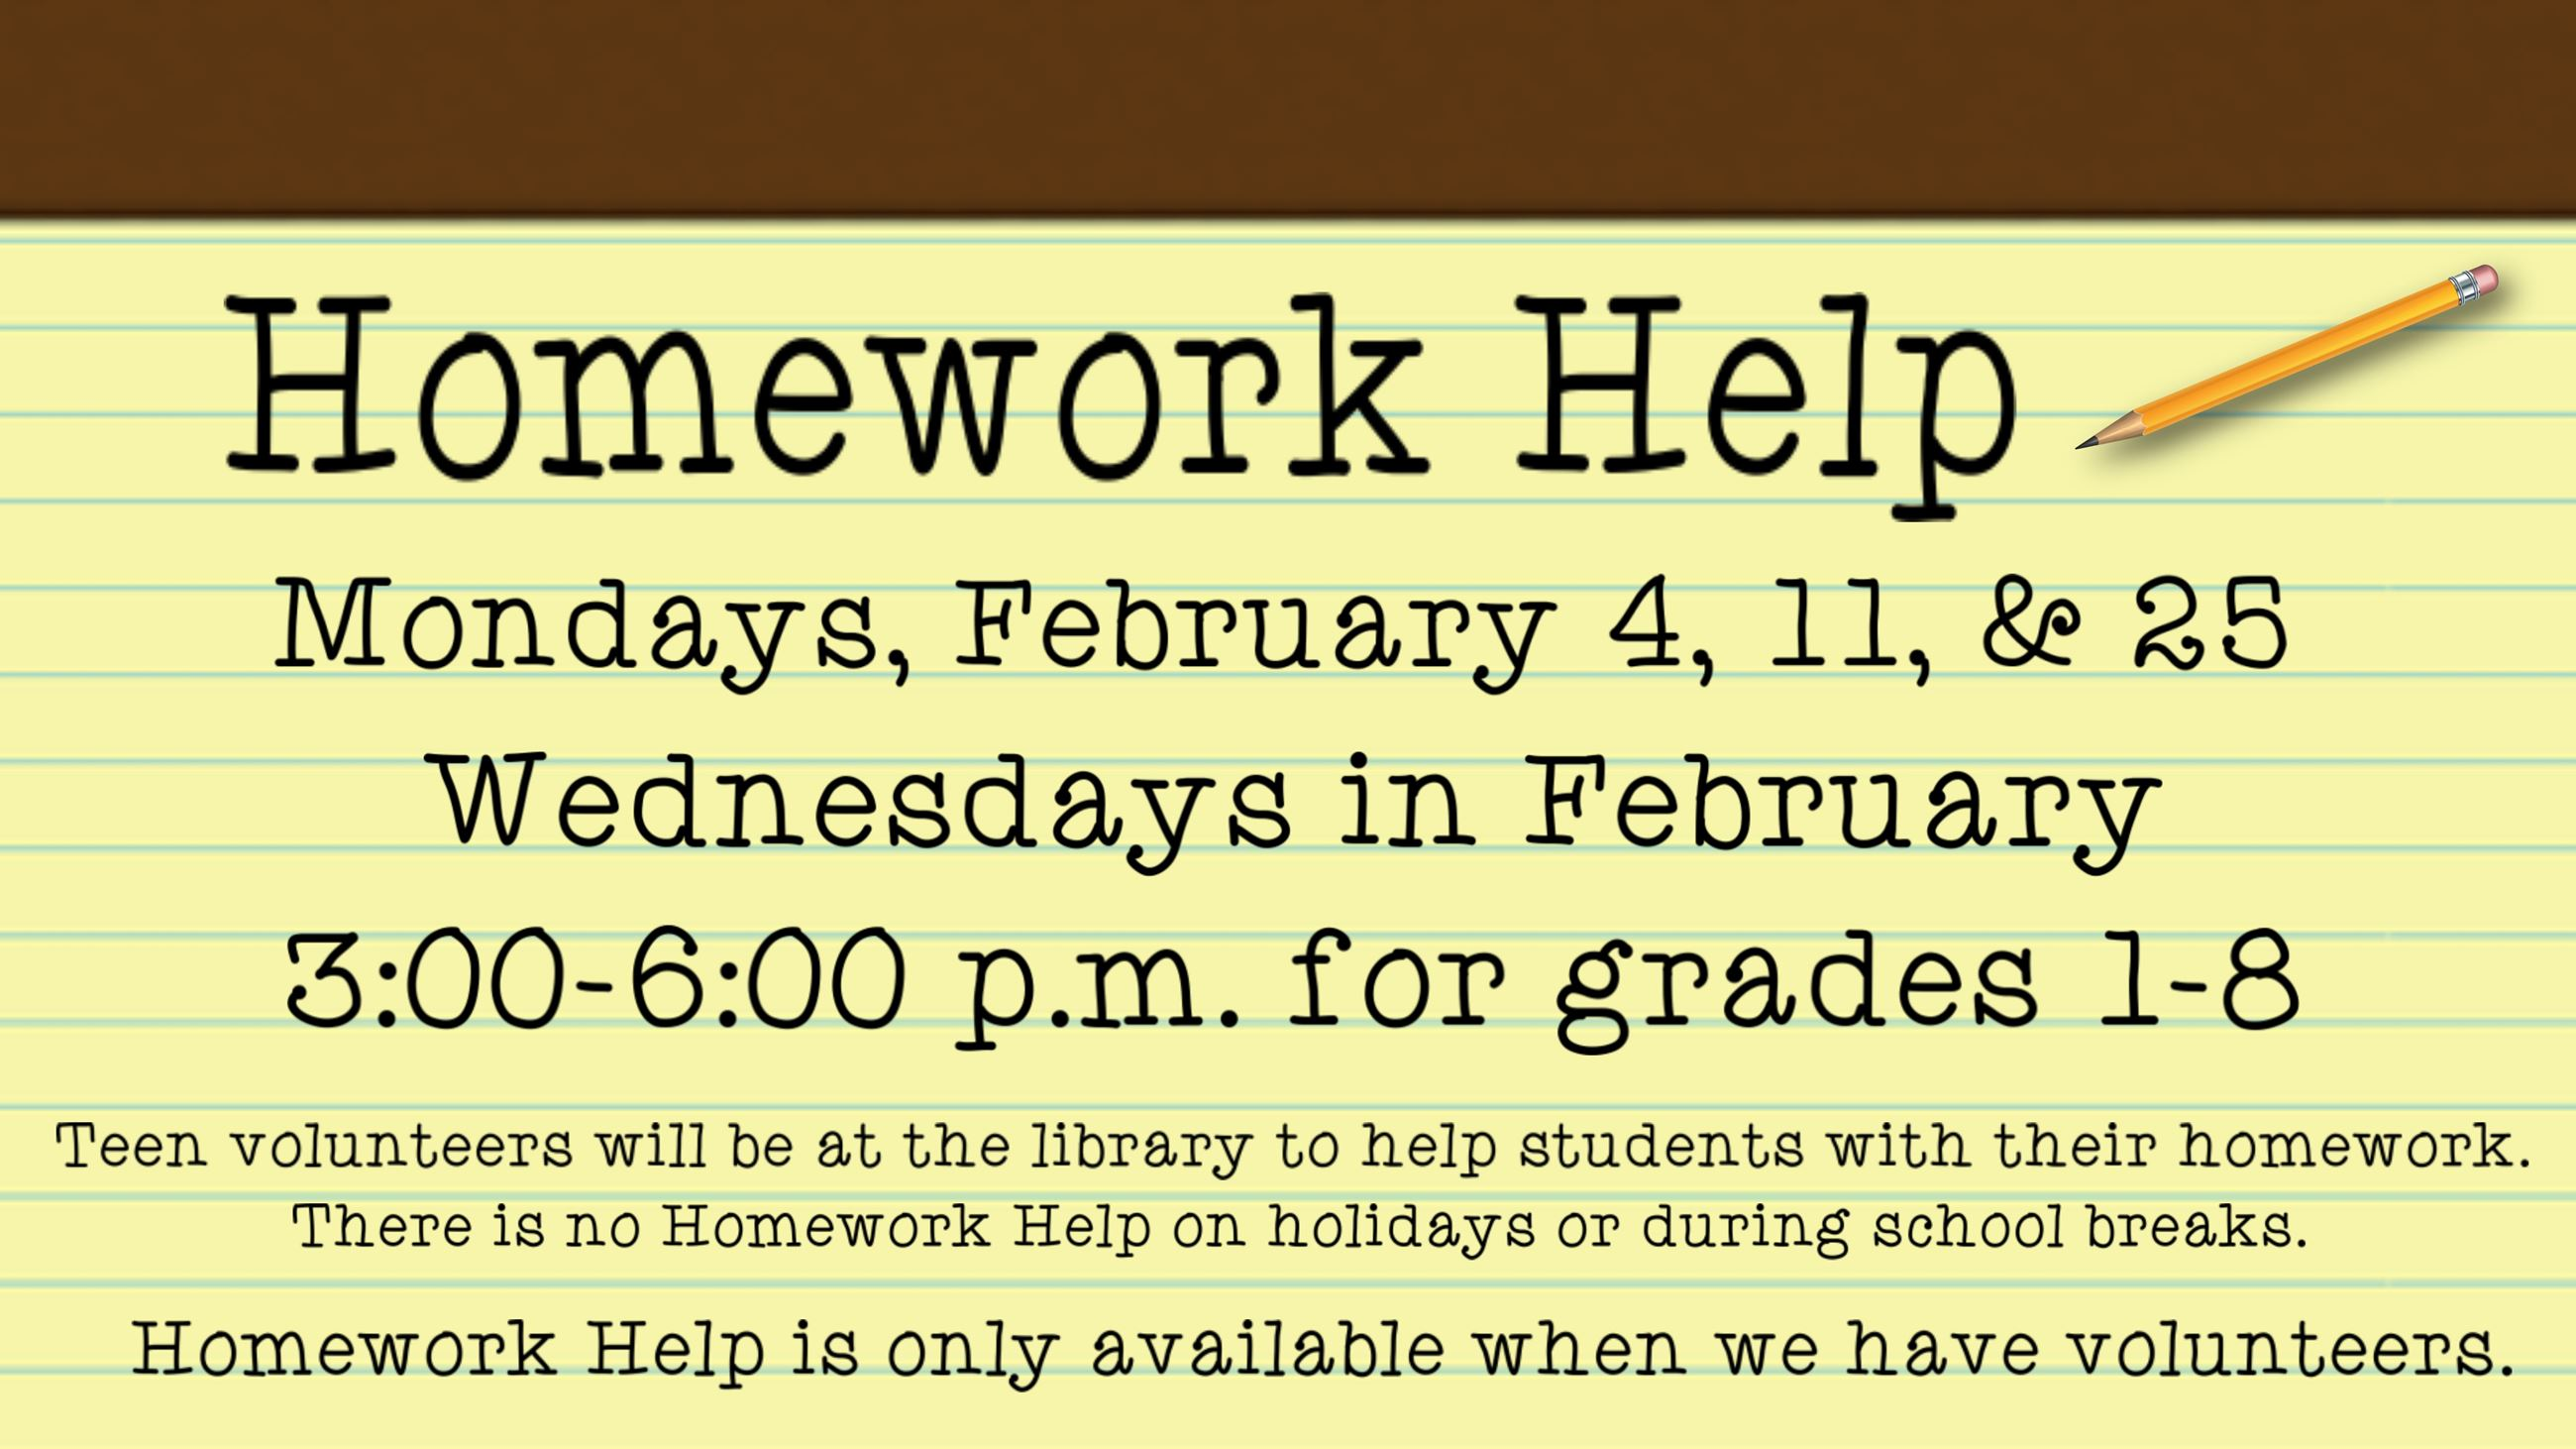 Homework Help. February 4, 11, & 25, & Wednesdays in February. 3 to 6 p.m. Grades 1 thru 8.